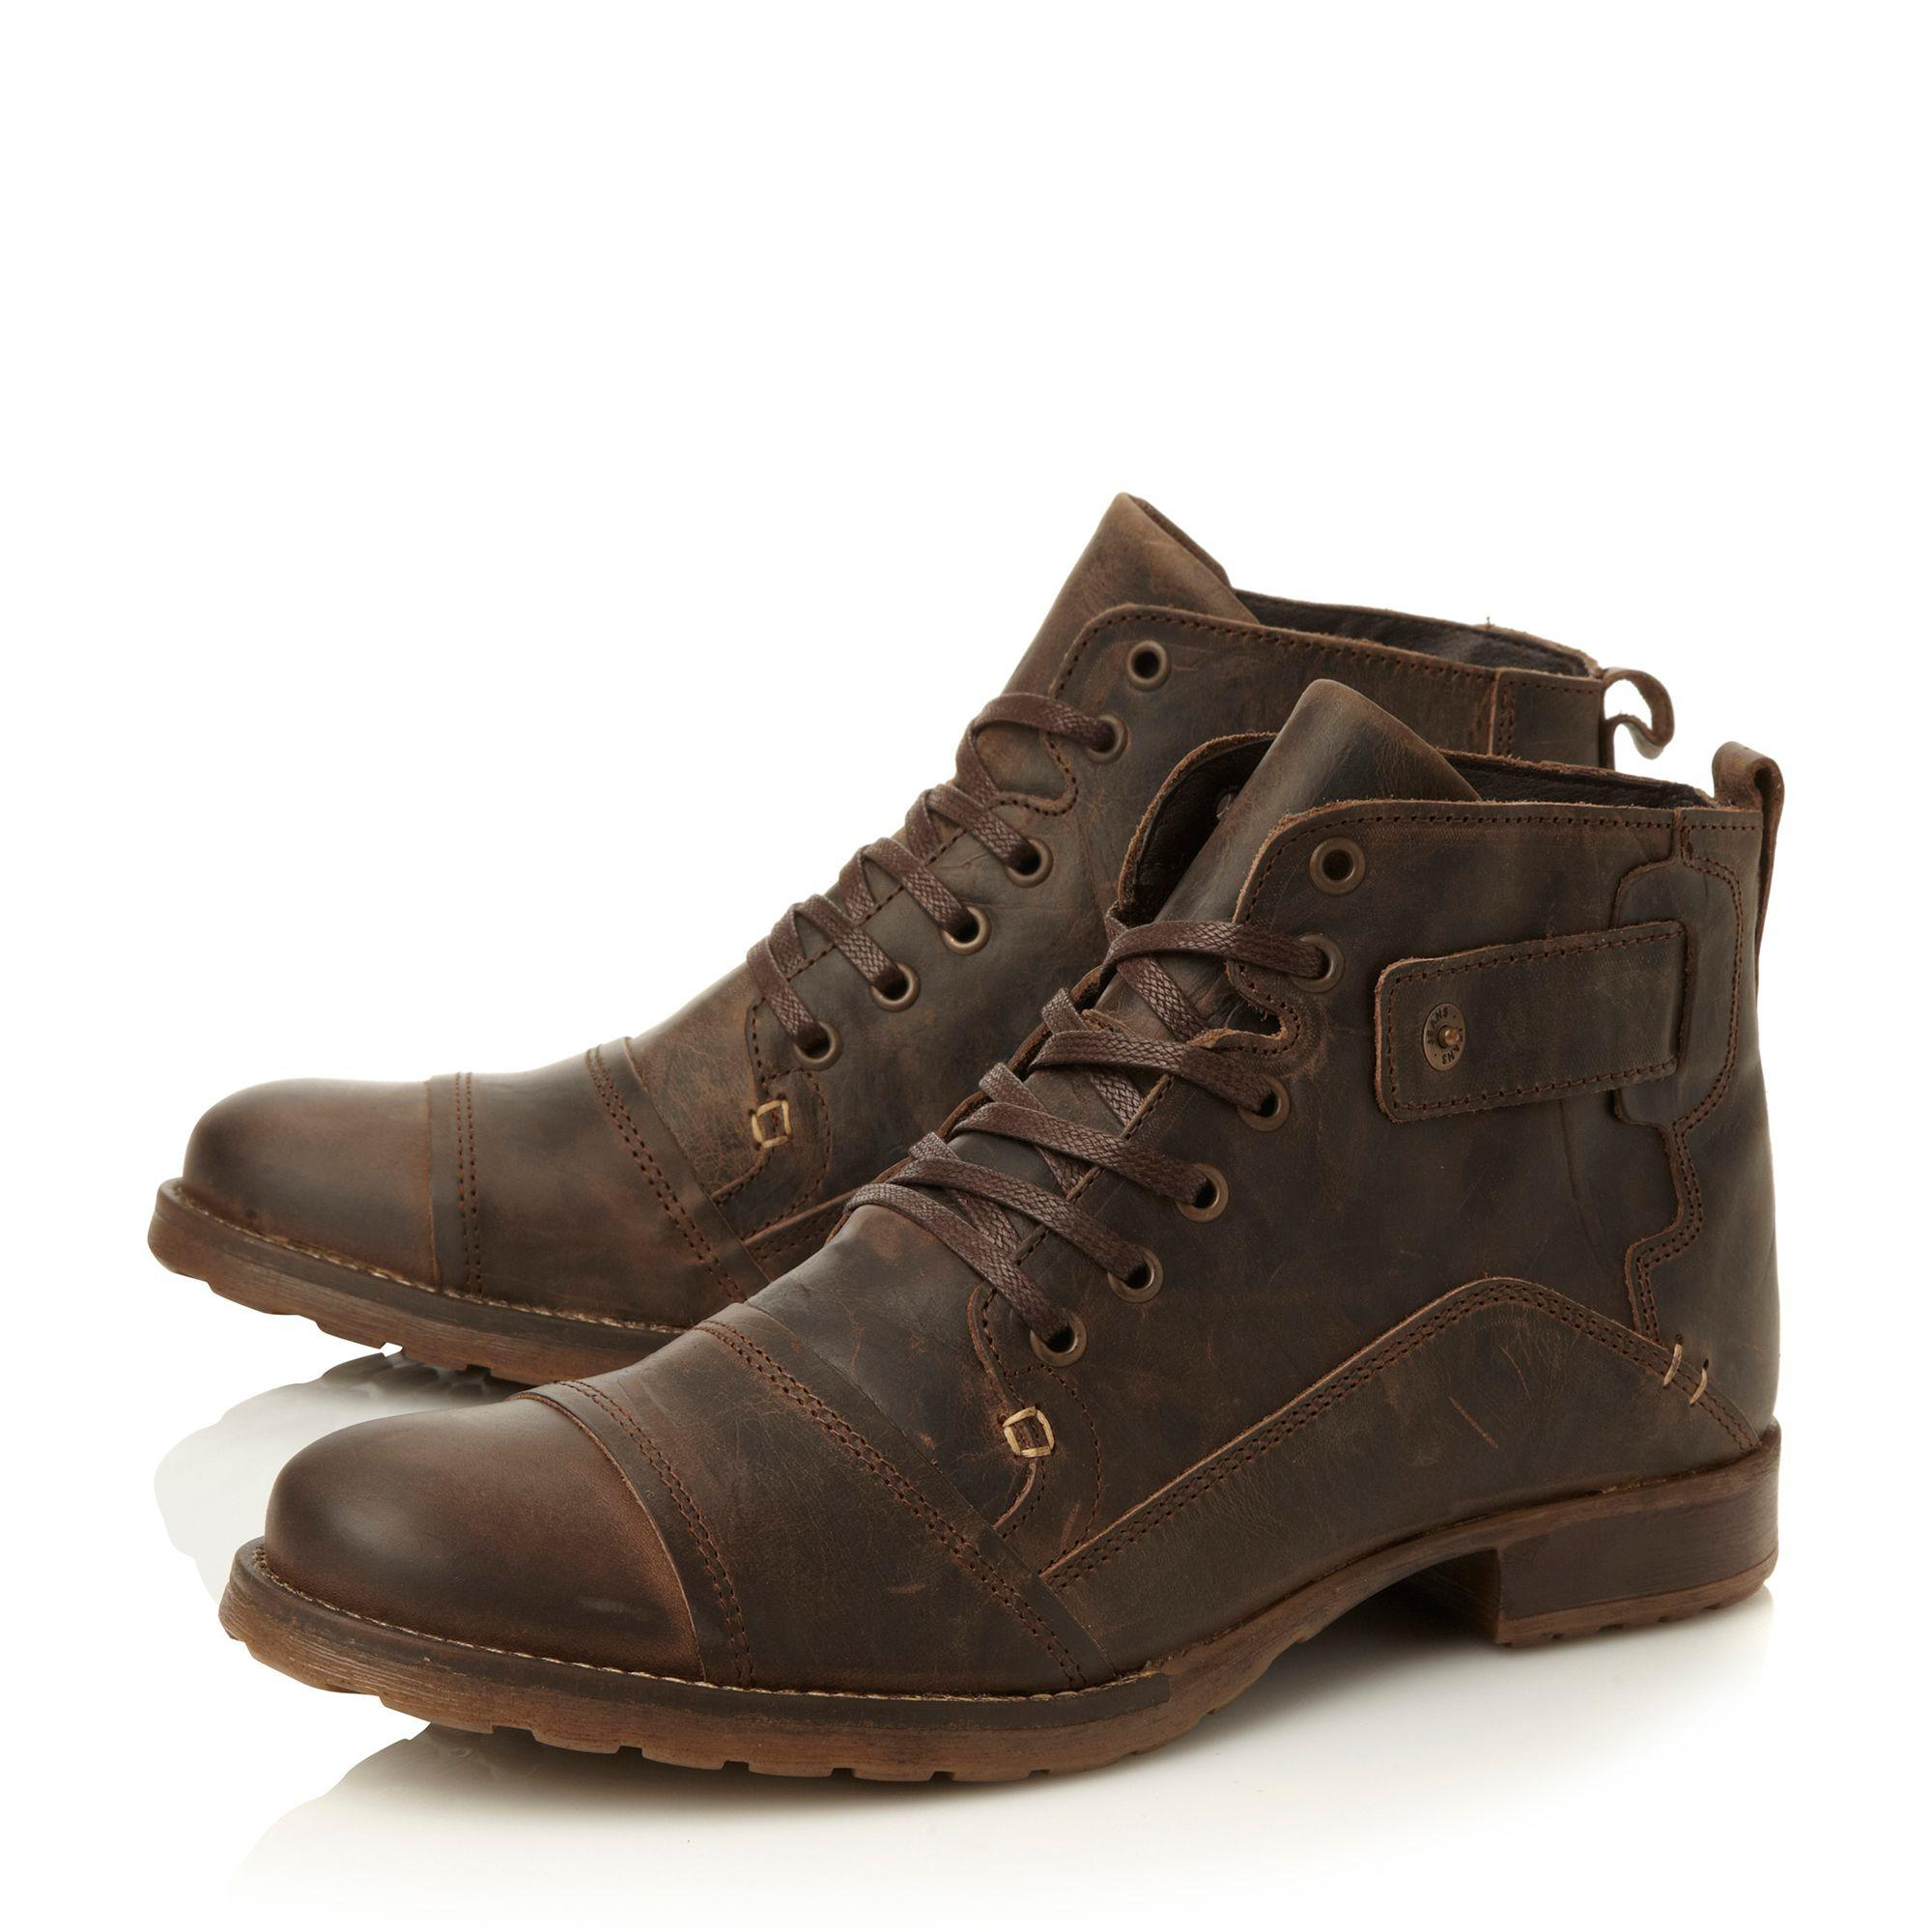 Dark brown 'Simon' heavy duty leather ankle boot free shipping footaction o9mrPg6v7